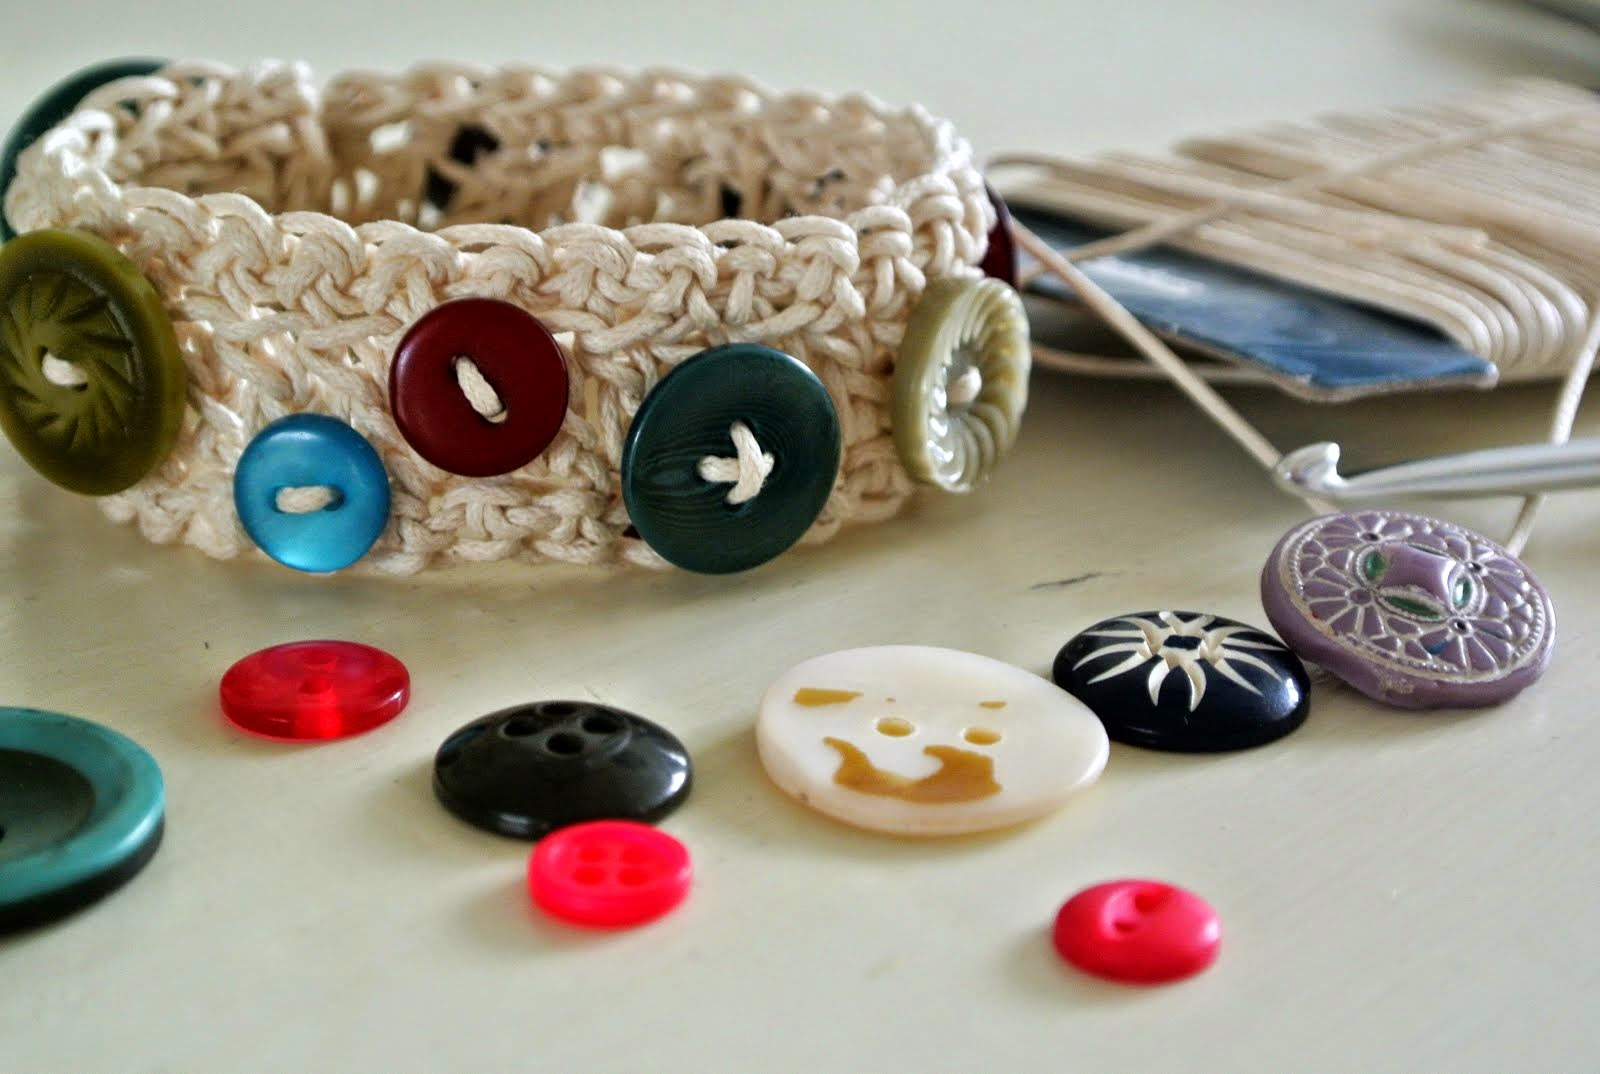 Give-away! Maak kans op een armbandje, stempels of workshop